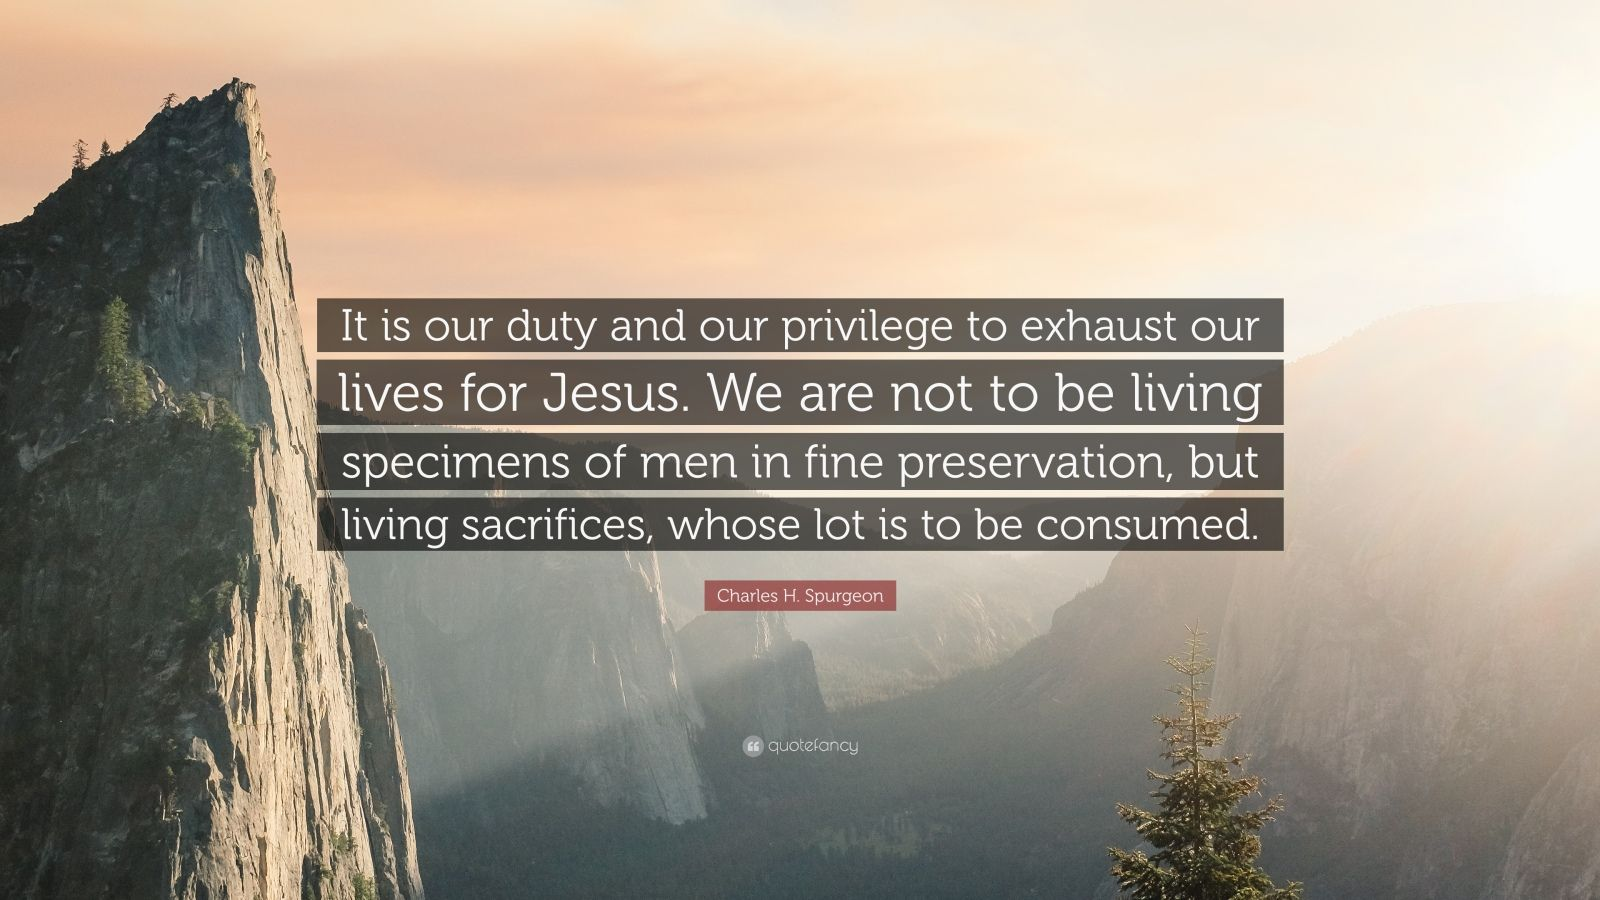 """Charles H. Spurgeon Quote: """"It is our duty and our privilege to exhaust our lives for Jesus. We are not to be living specimens of men in fine preservation, but living sacrifices, whose lot is to be consumed."""""""